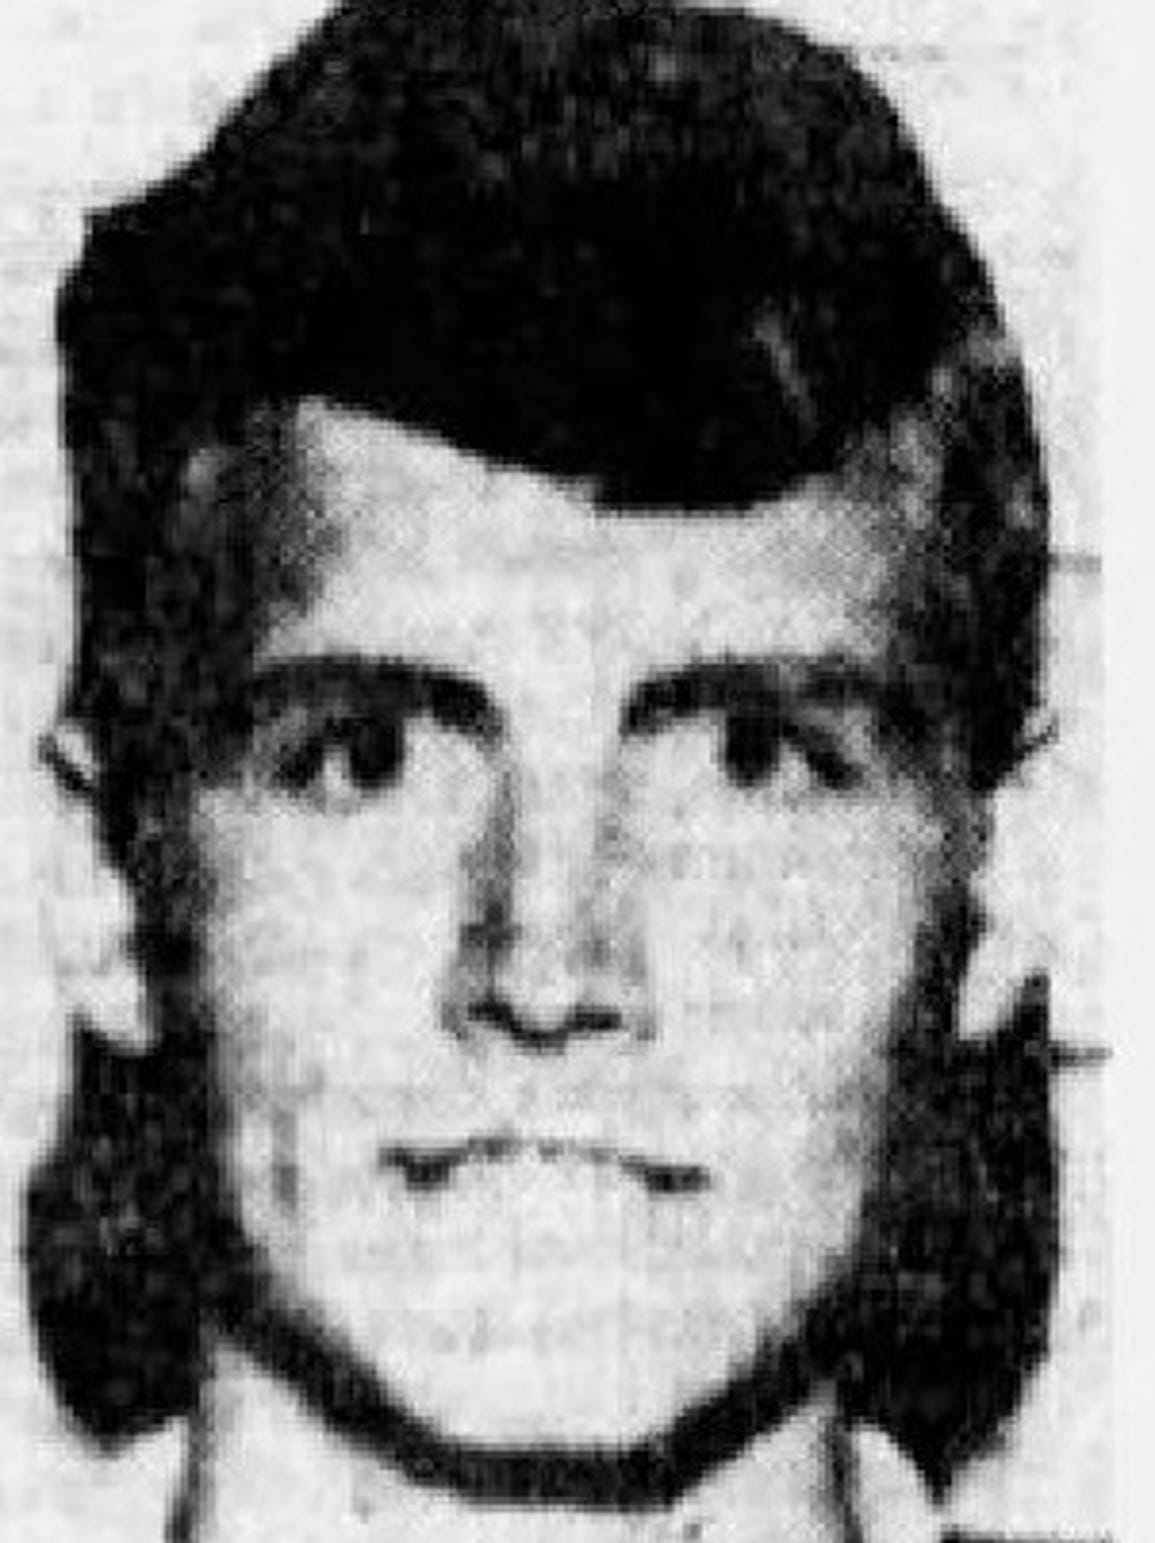 A mugshot of Ricky Tison in an archive from The Arizona